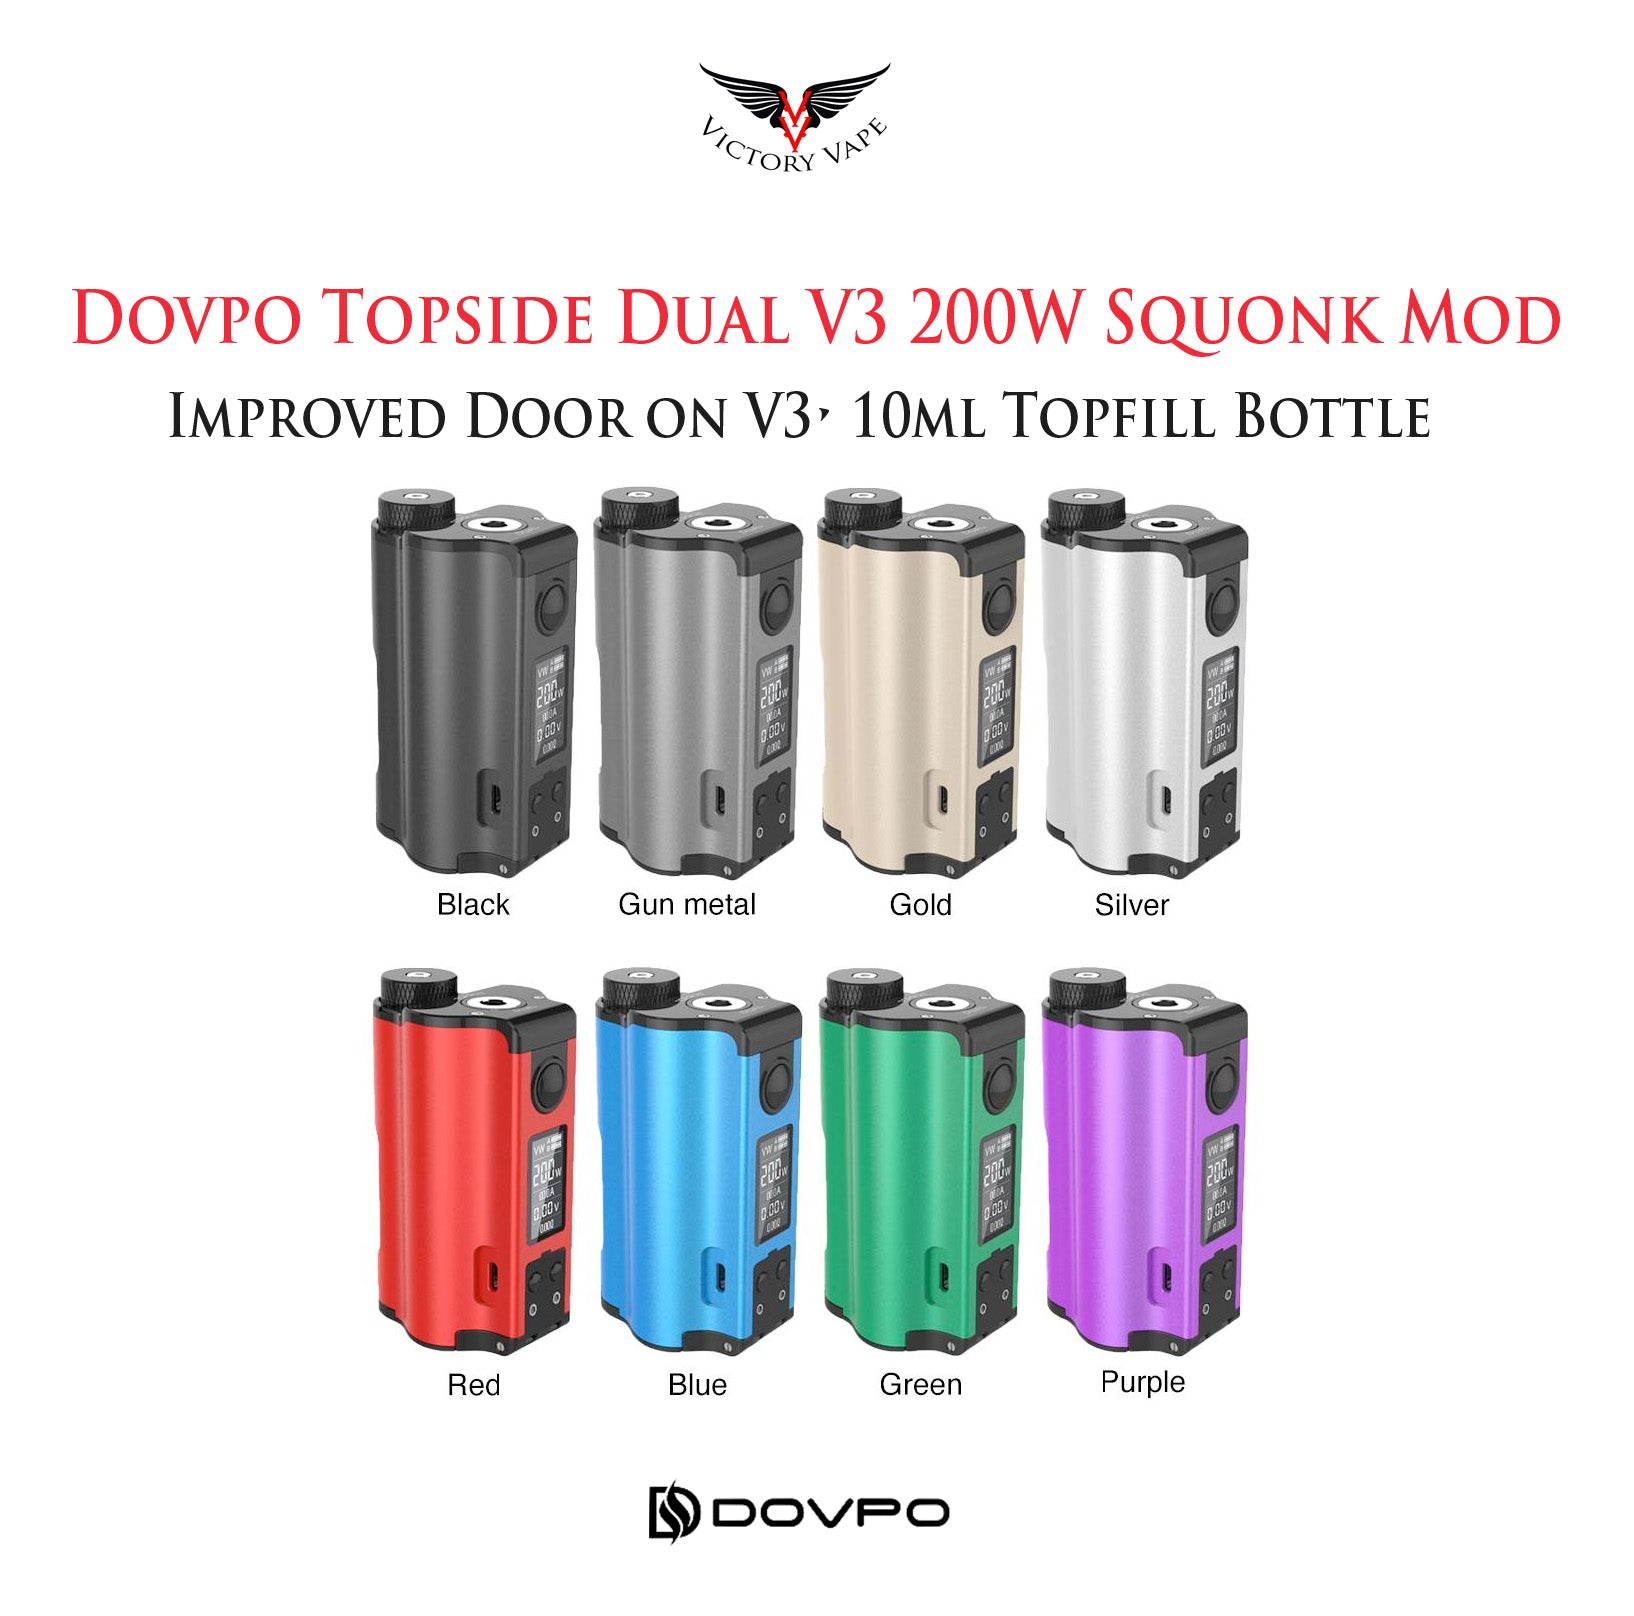 Dovpo Topside V3 Dual 200W Top Fill • 10ml vv/vw Squonk Mod